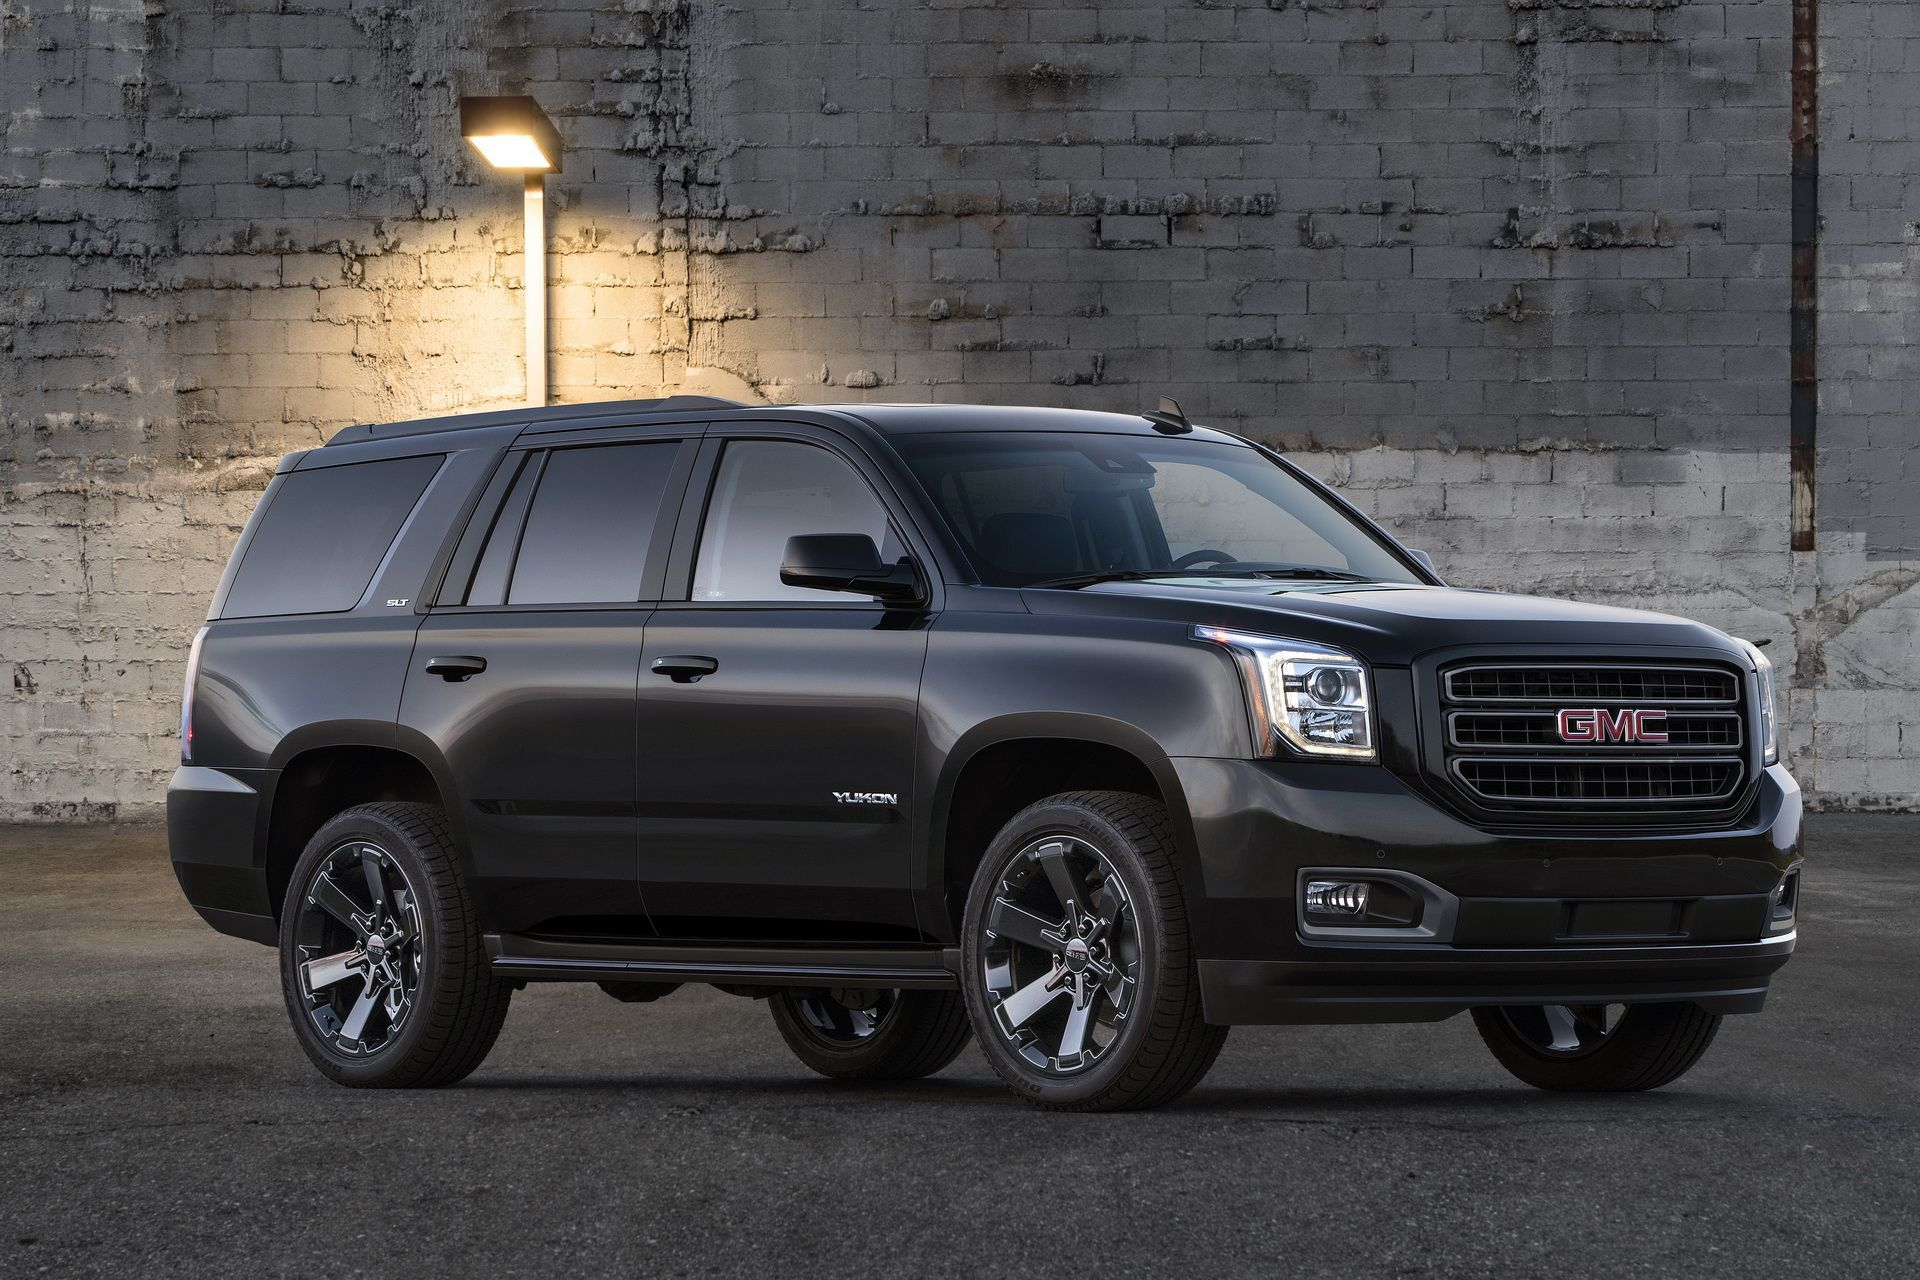 Gmc Yukon Gains Two 2019 Graphite Edition Versions Carscoops Gmc Yukon Gmc Yukon Xl Gmc